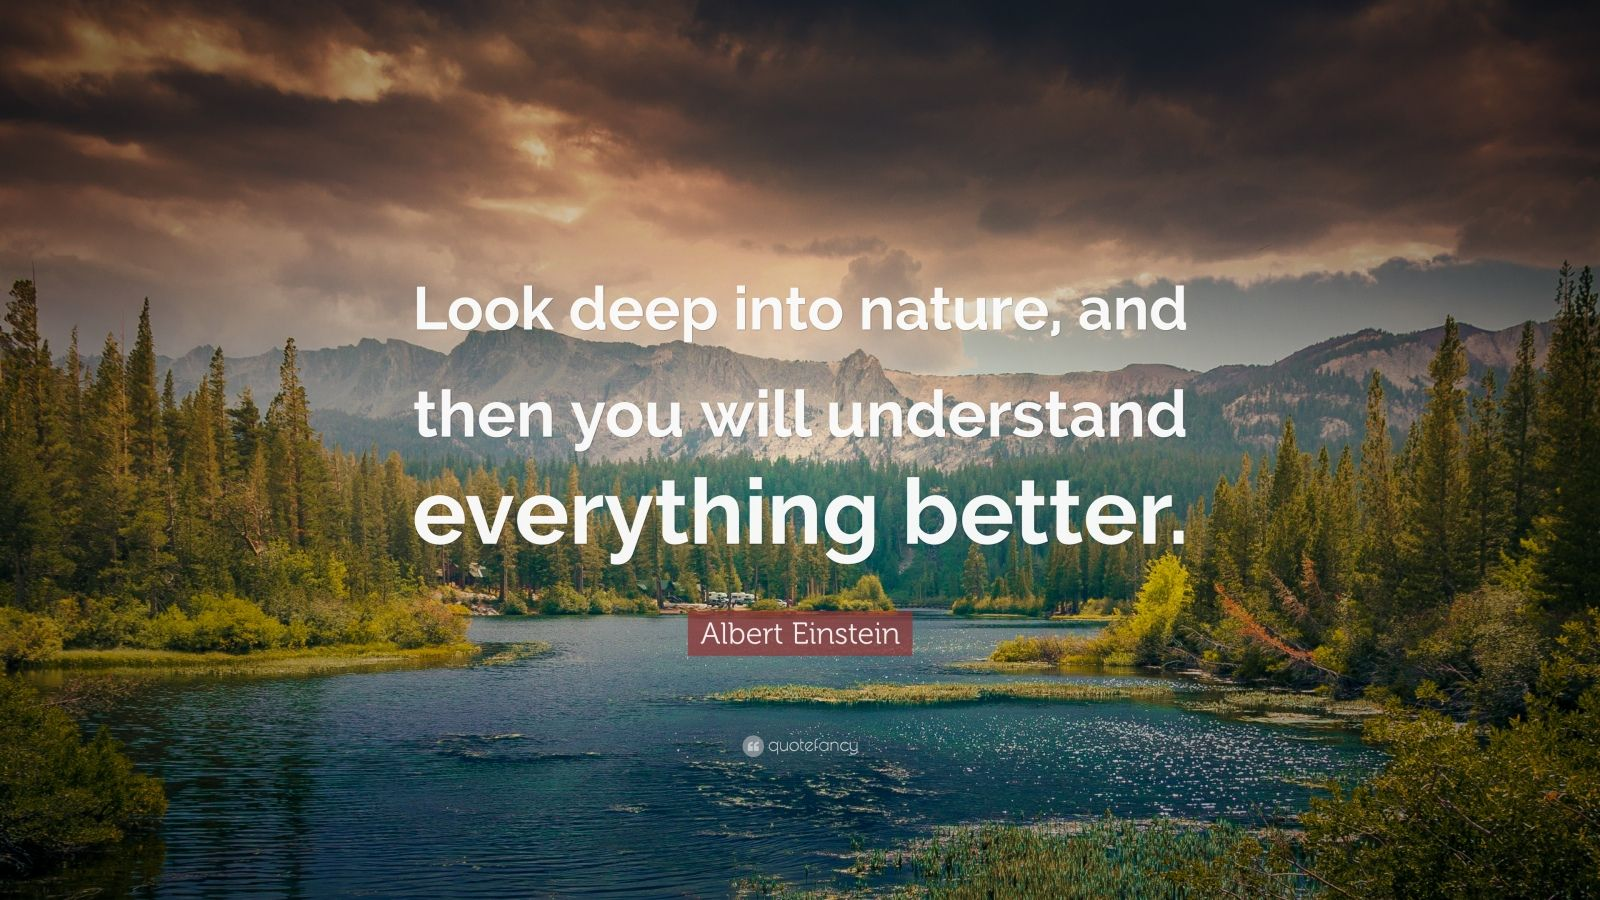 Deep Wallpaper Quotes Albert Einstein Quote Look Deep Into Nature And Then